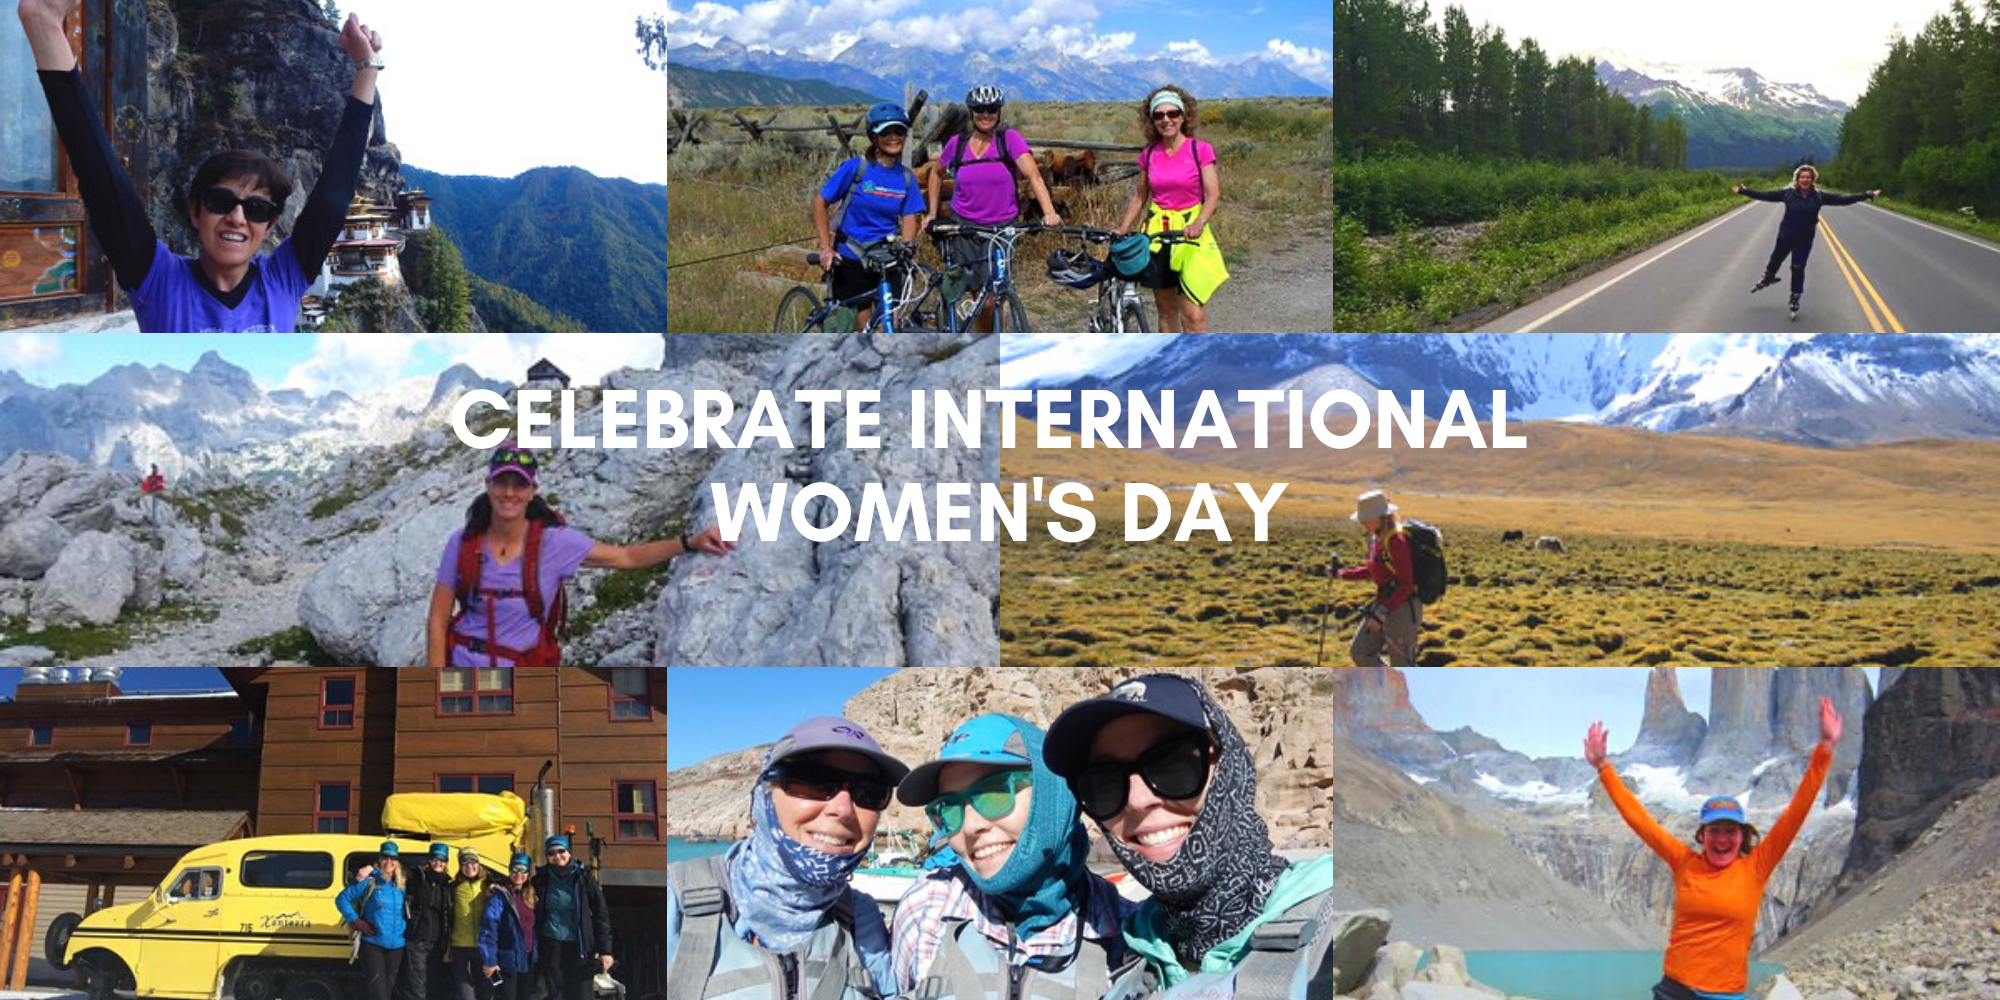 Celebrating Adventurous Women on International Women's Day